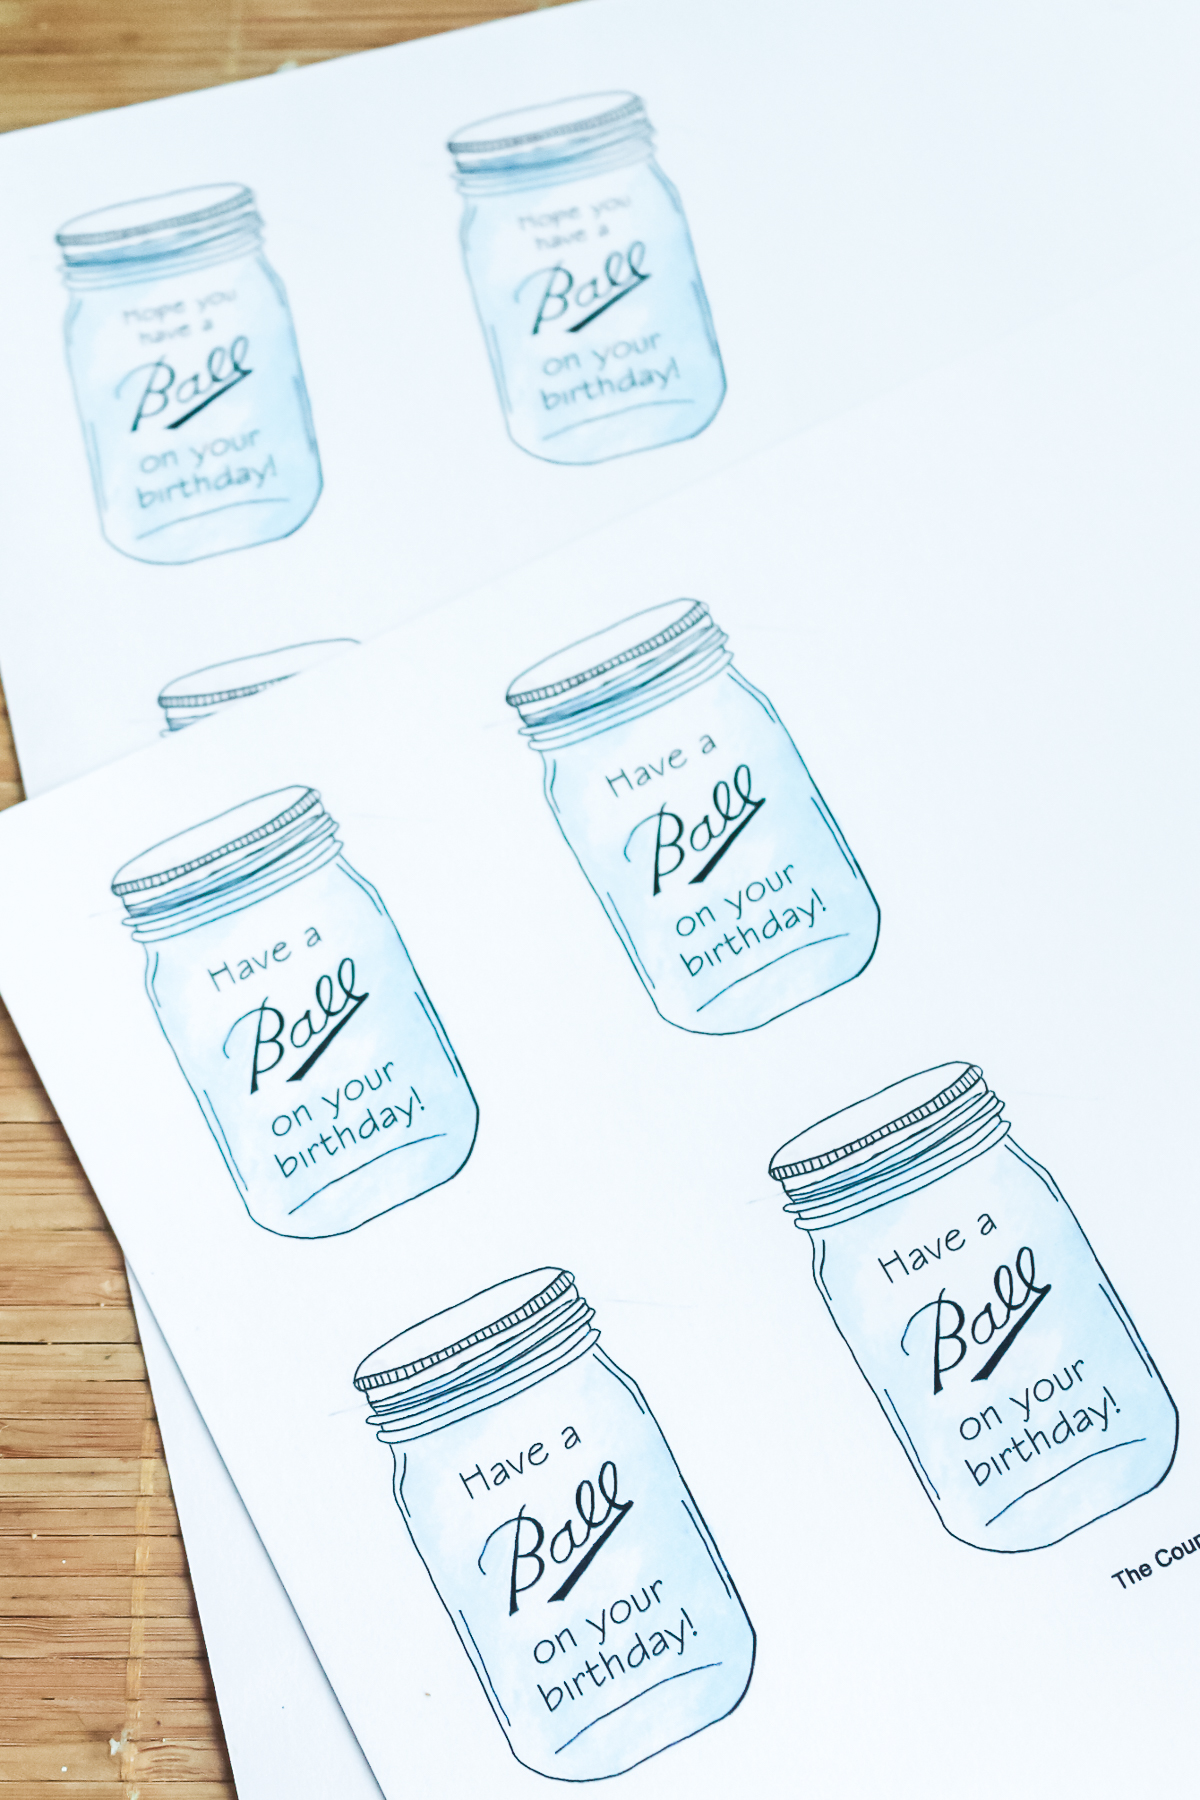 birthday gift tags printed on white cardstock